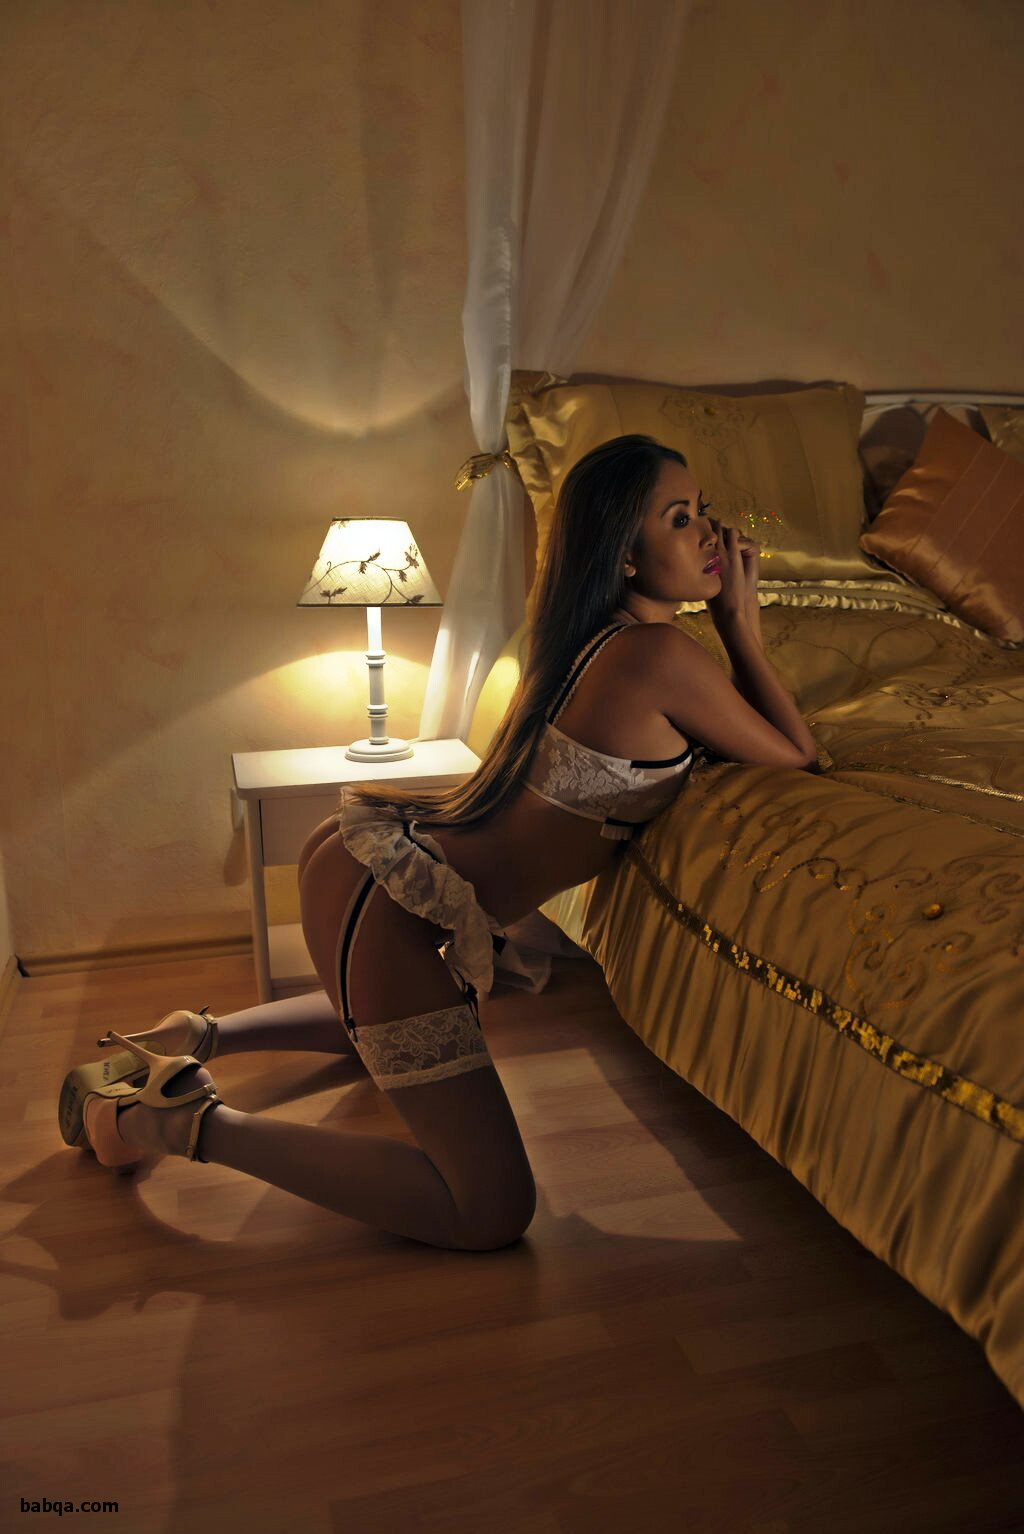 erotic lingerie designers and winter stockings with dresses